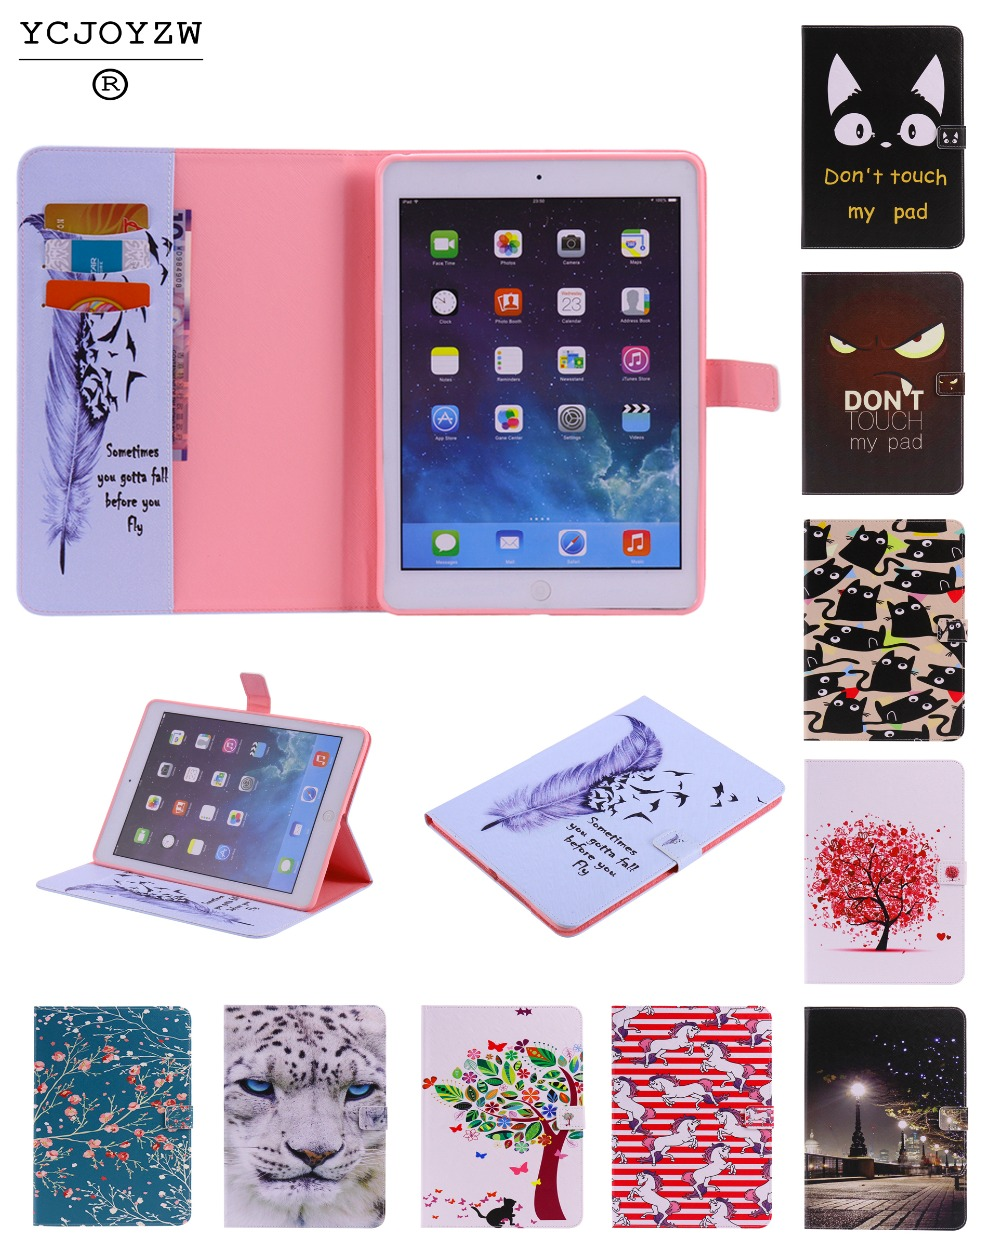 New popular cartoon Case for Apple iPad Air 1 A1474`A1475`A1476.PU leather cover+TPU soft Case-Smart sleep wake up case YCJOYZW ycjoyzw tpu smart case cover for apple ipad mini 4 or for ipad air 2 wake up sleep ultra slim designer tablet pu leather cover